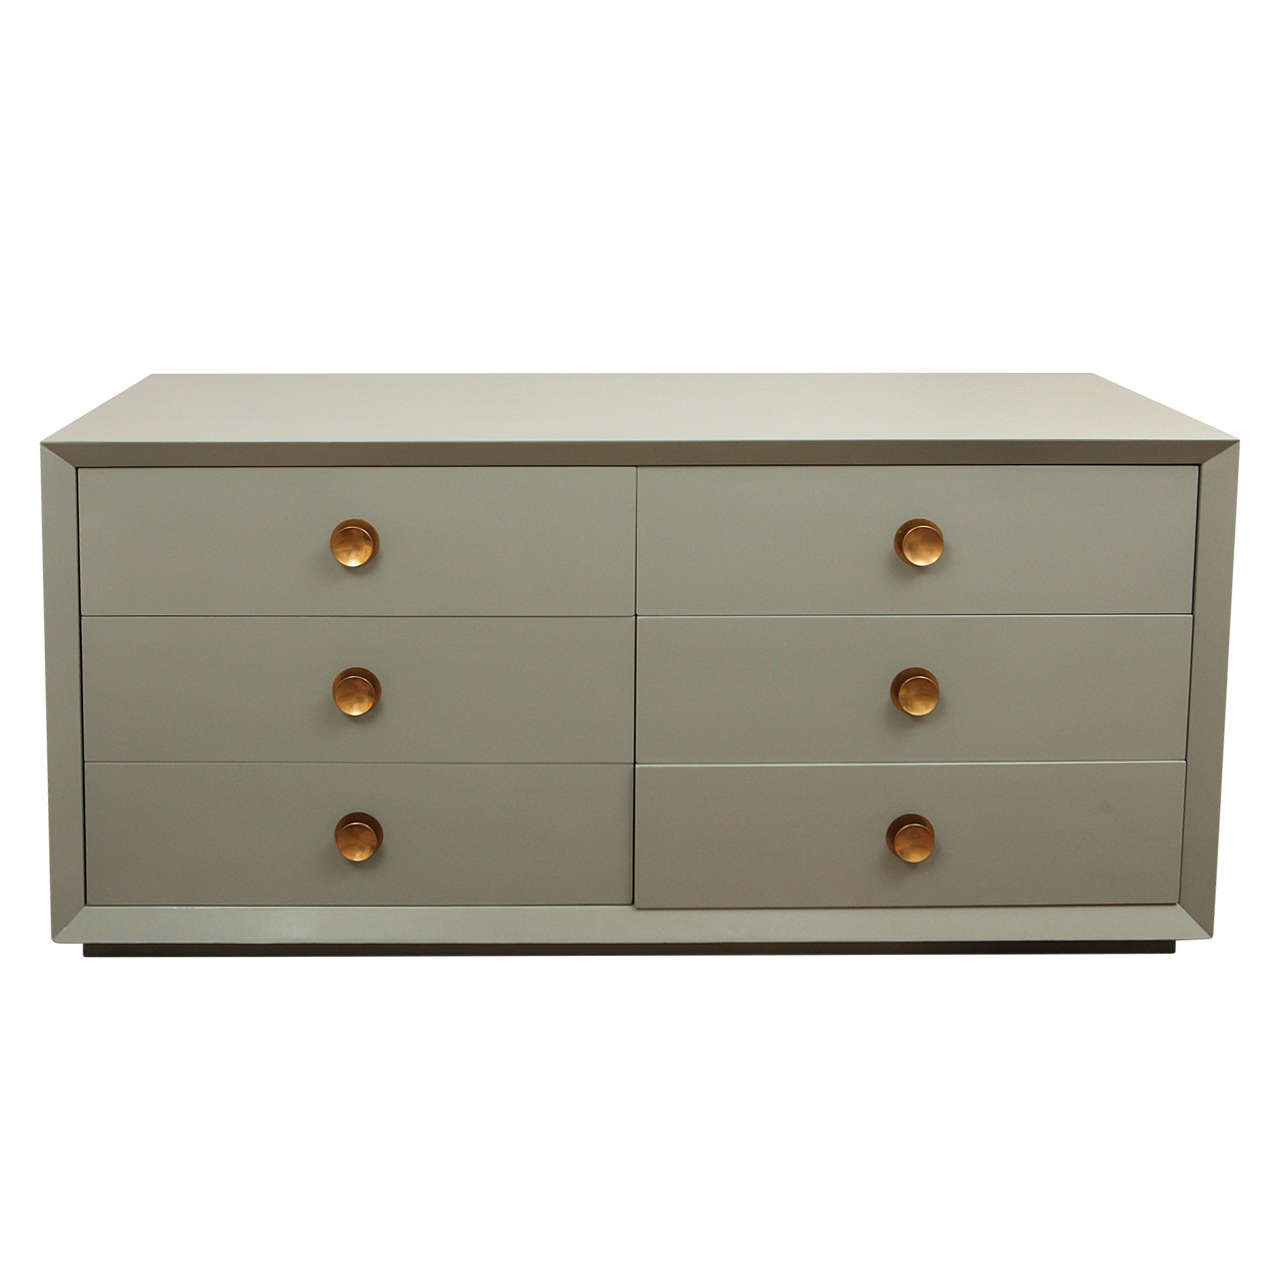 6 drawer lacquered chest at 1stdibs for 1 door 6 drawer chest